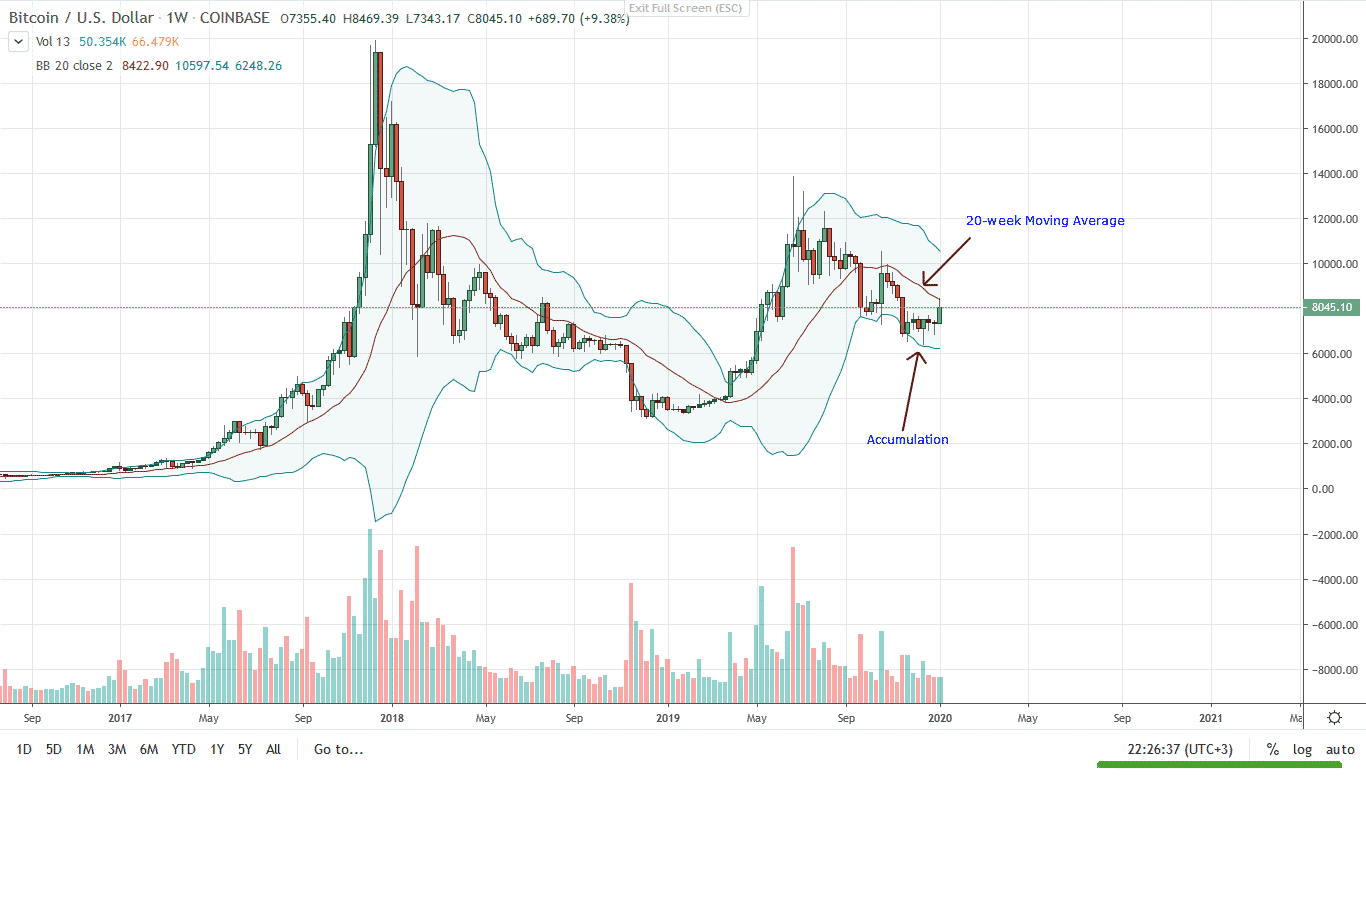 Bitcoin BTC Weekly Chart for Jan 8